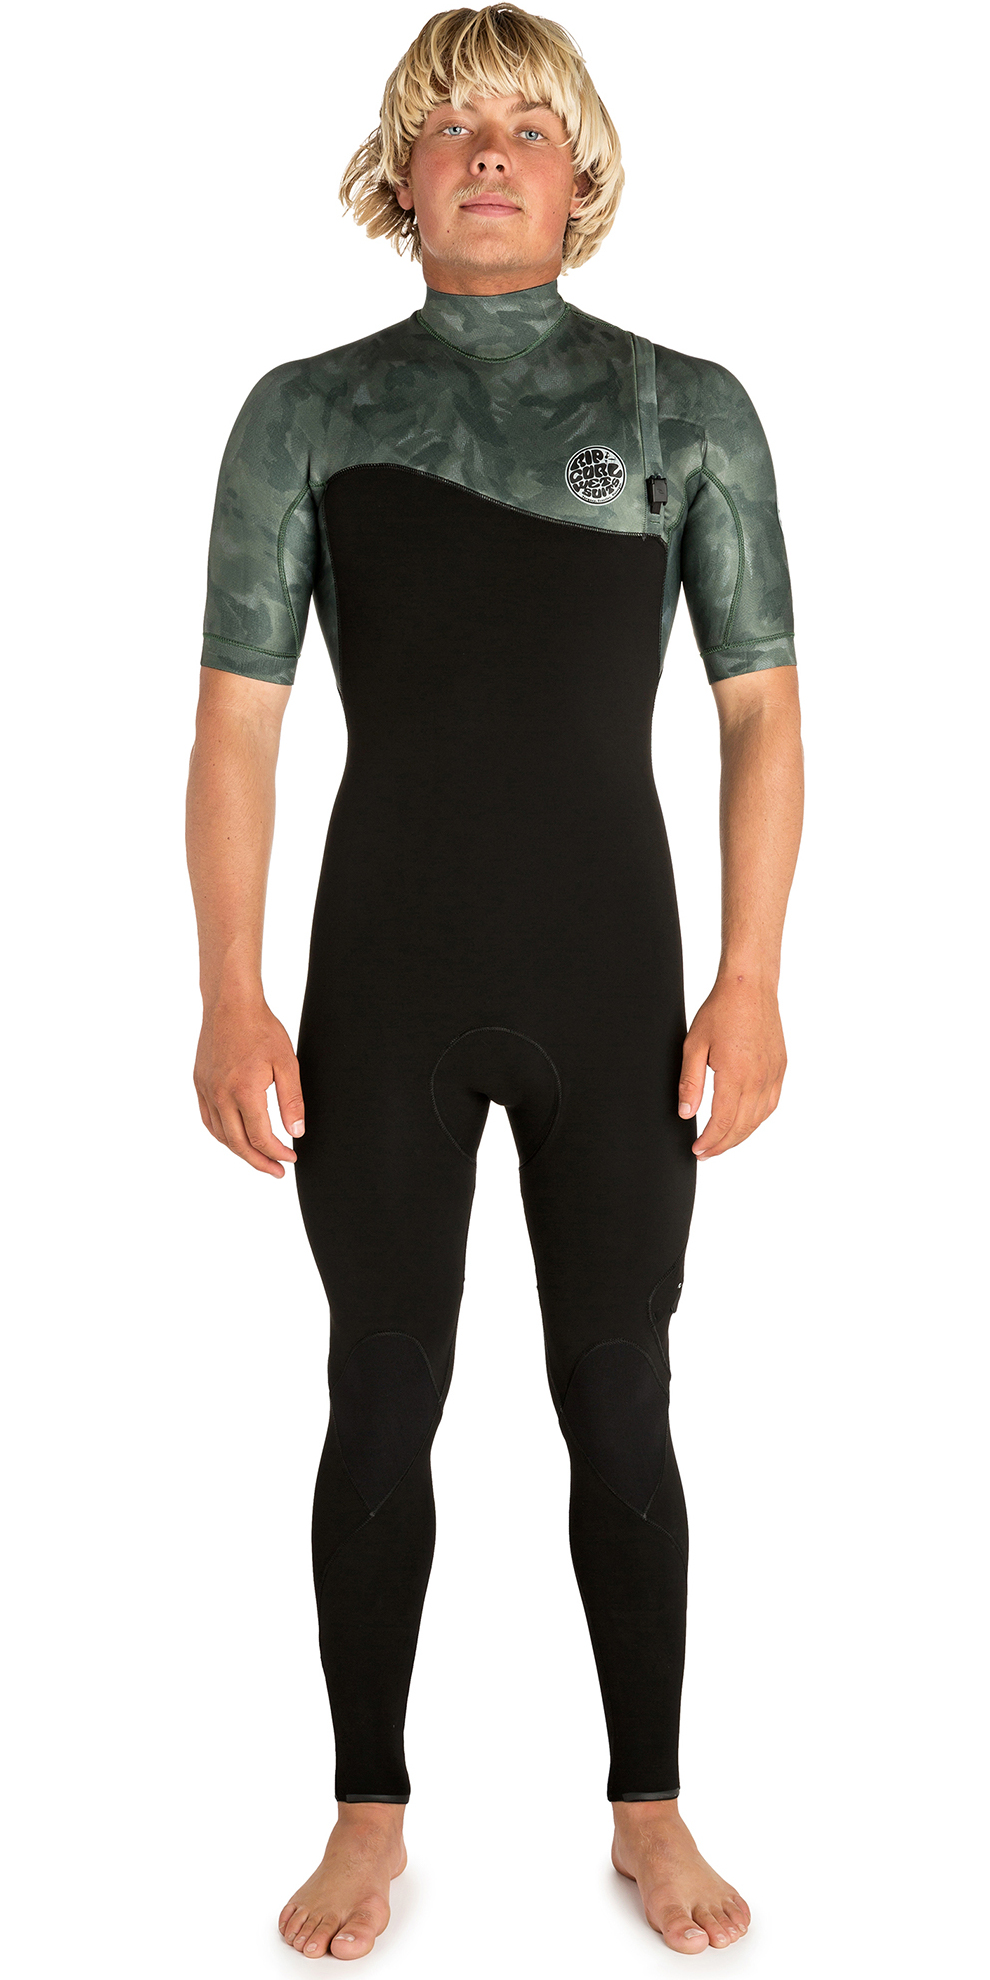 7bc00978cae8e 2019 Rip Curl Mens E-bomb 2mm Zip Free Short Sleeve Wetsuit Camo Wsm8ts -  Mens - 2mm Wetsuits | Wetsuit Outlet